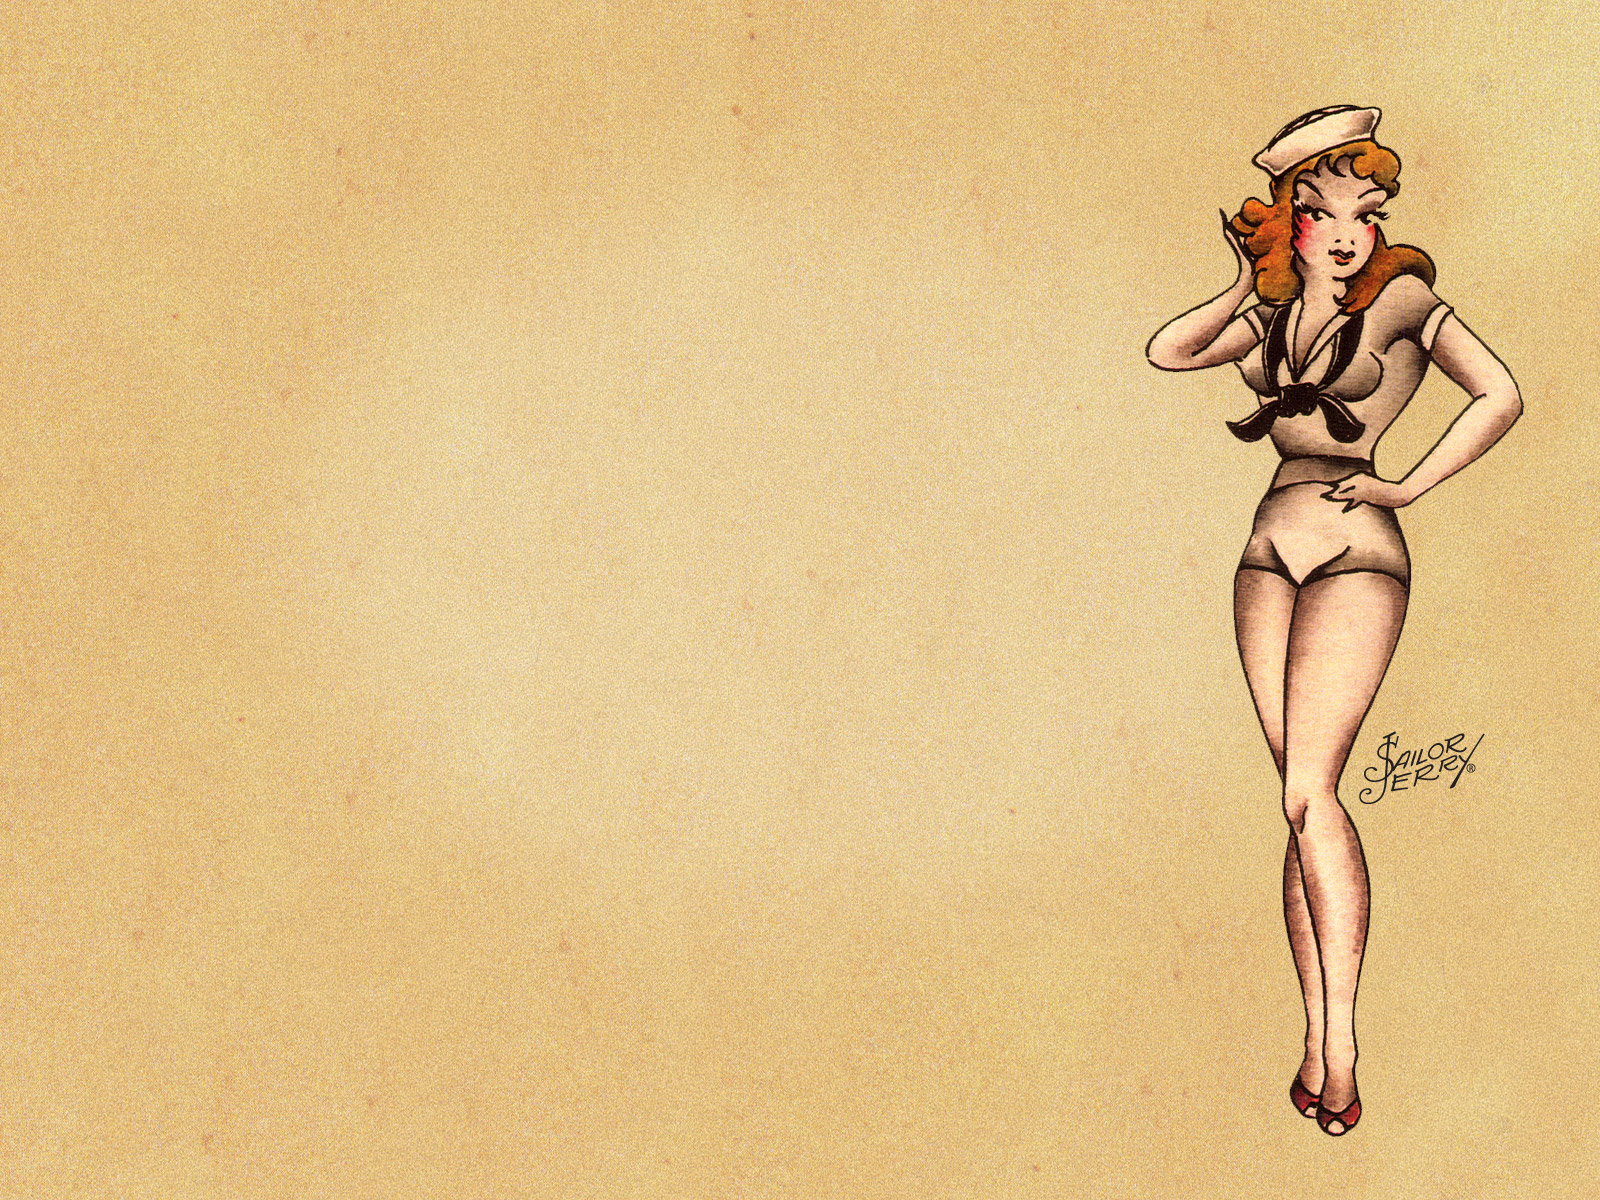 Sailor jerry girl pin up - gm6.info